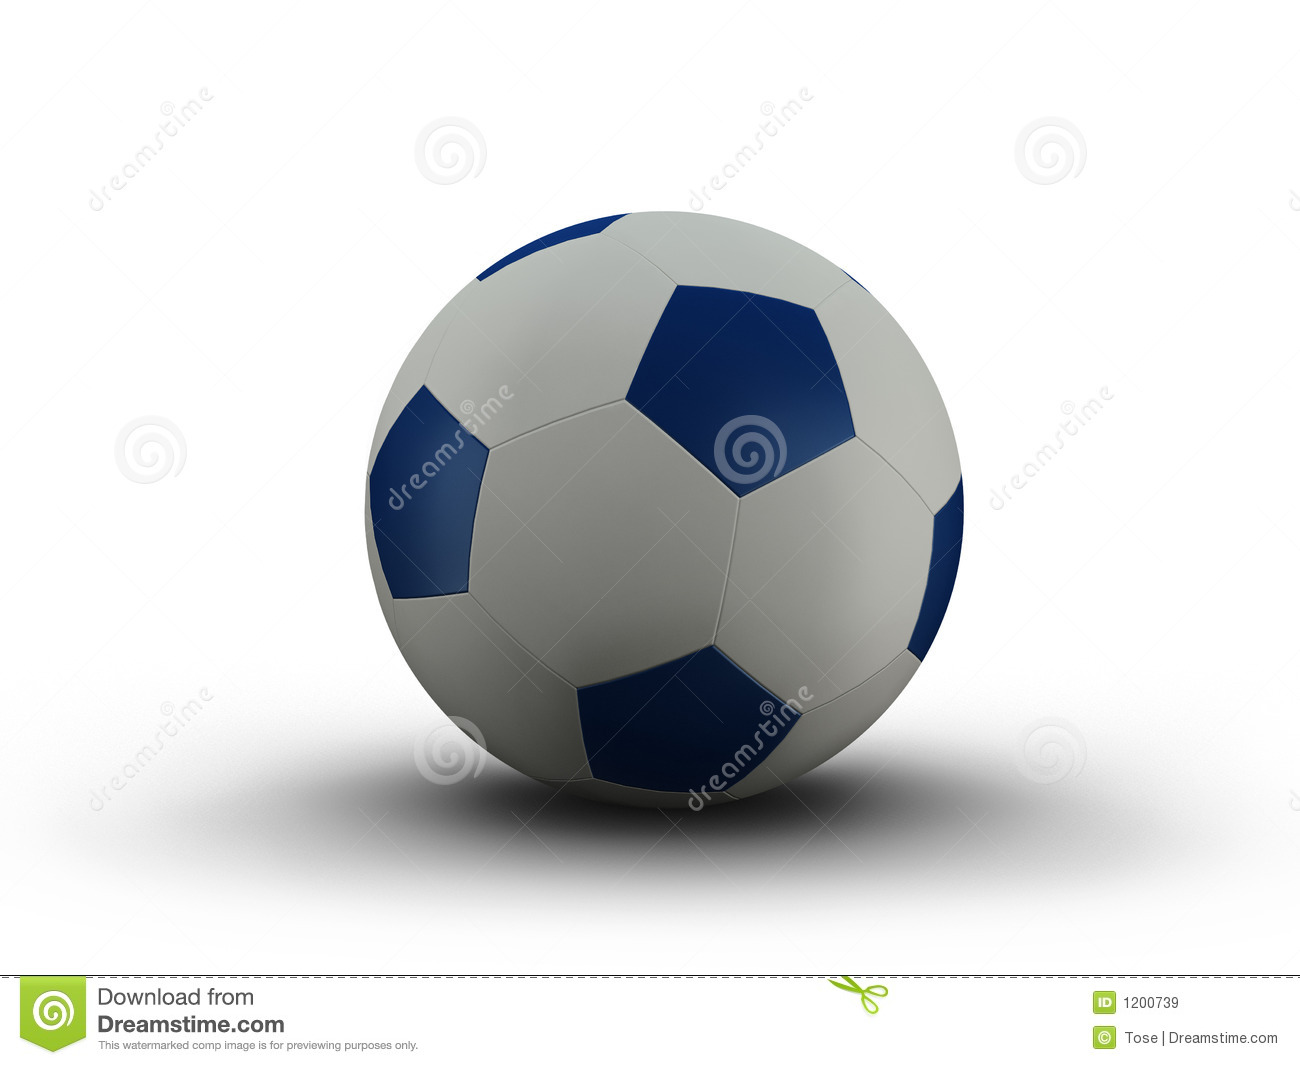 Illustration of a blue and white soccerball